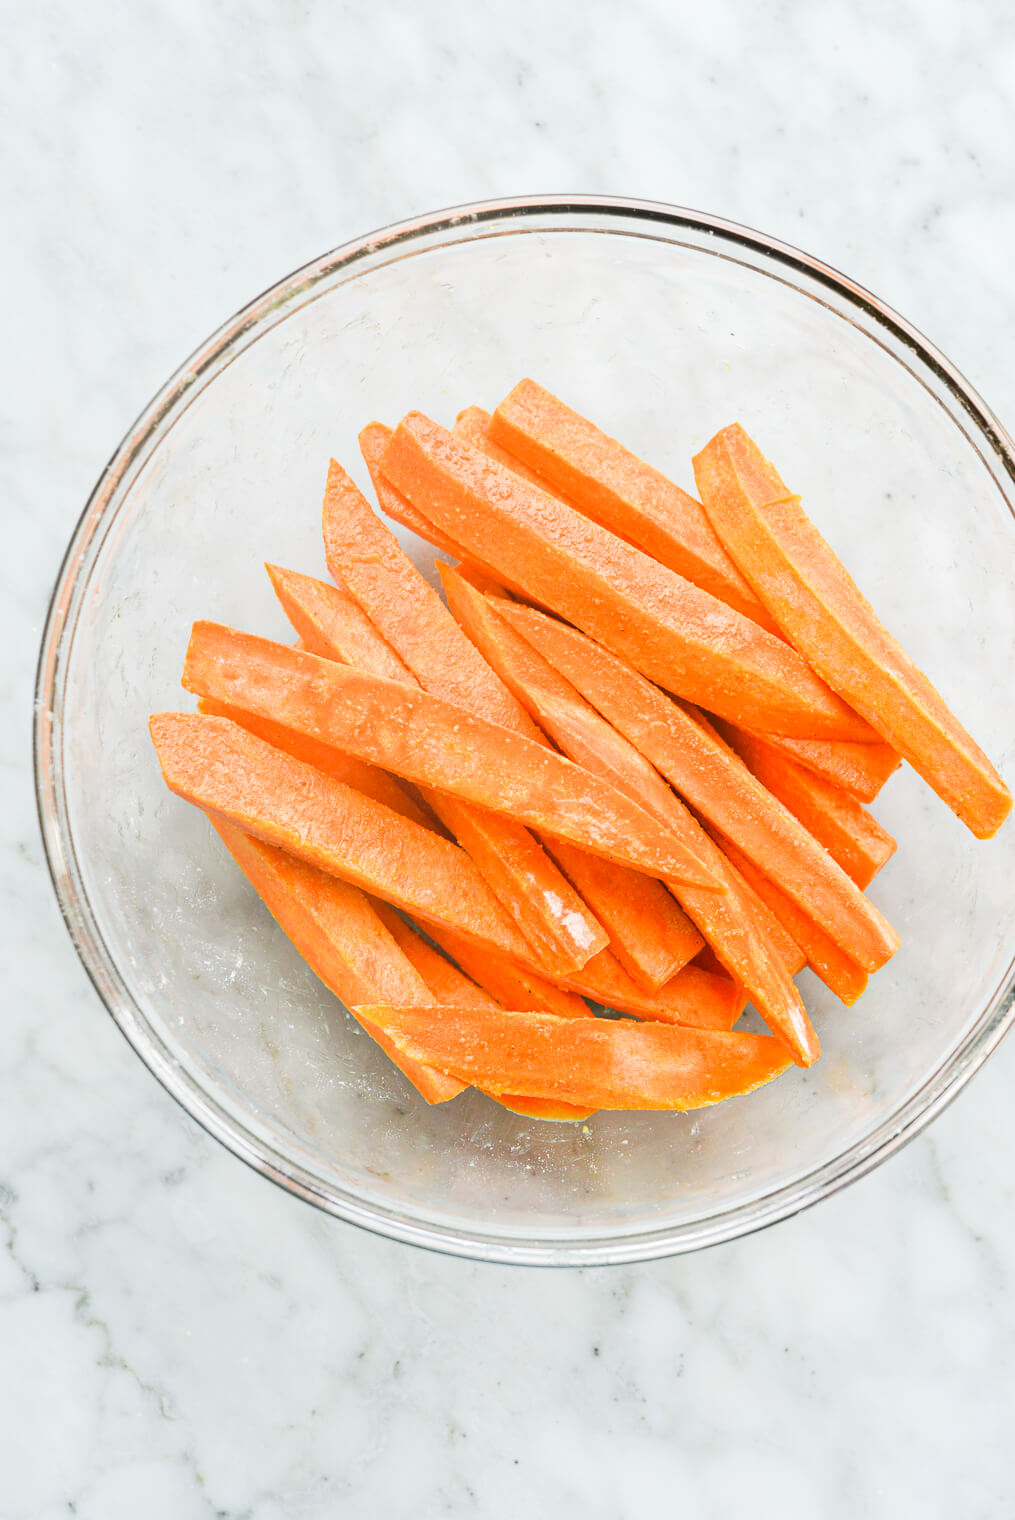 a clear glass bowl of fry-cut sweet potatoes coated in arrowroot starch